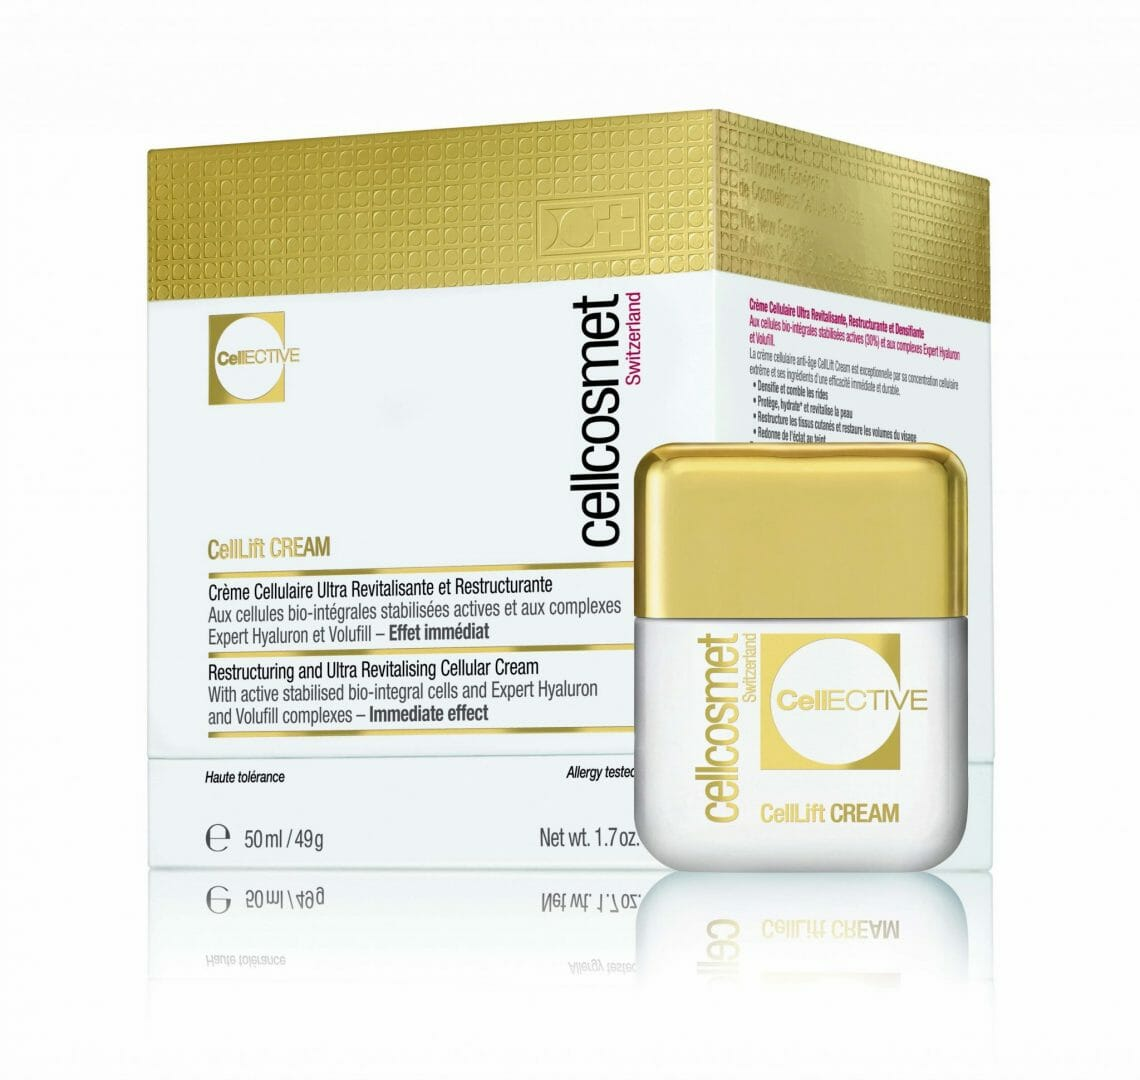 I.2114.1501 V01 BROCH CellLift Cream 50 Luxury Beauty: Cellcosmet CellEctive CellLift Cream Radiance and Youth Booster - EAT LOVE SAVOR International luxury lifestyle magazine and bookazines